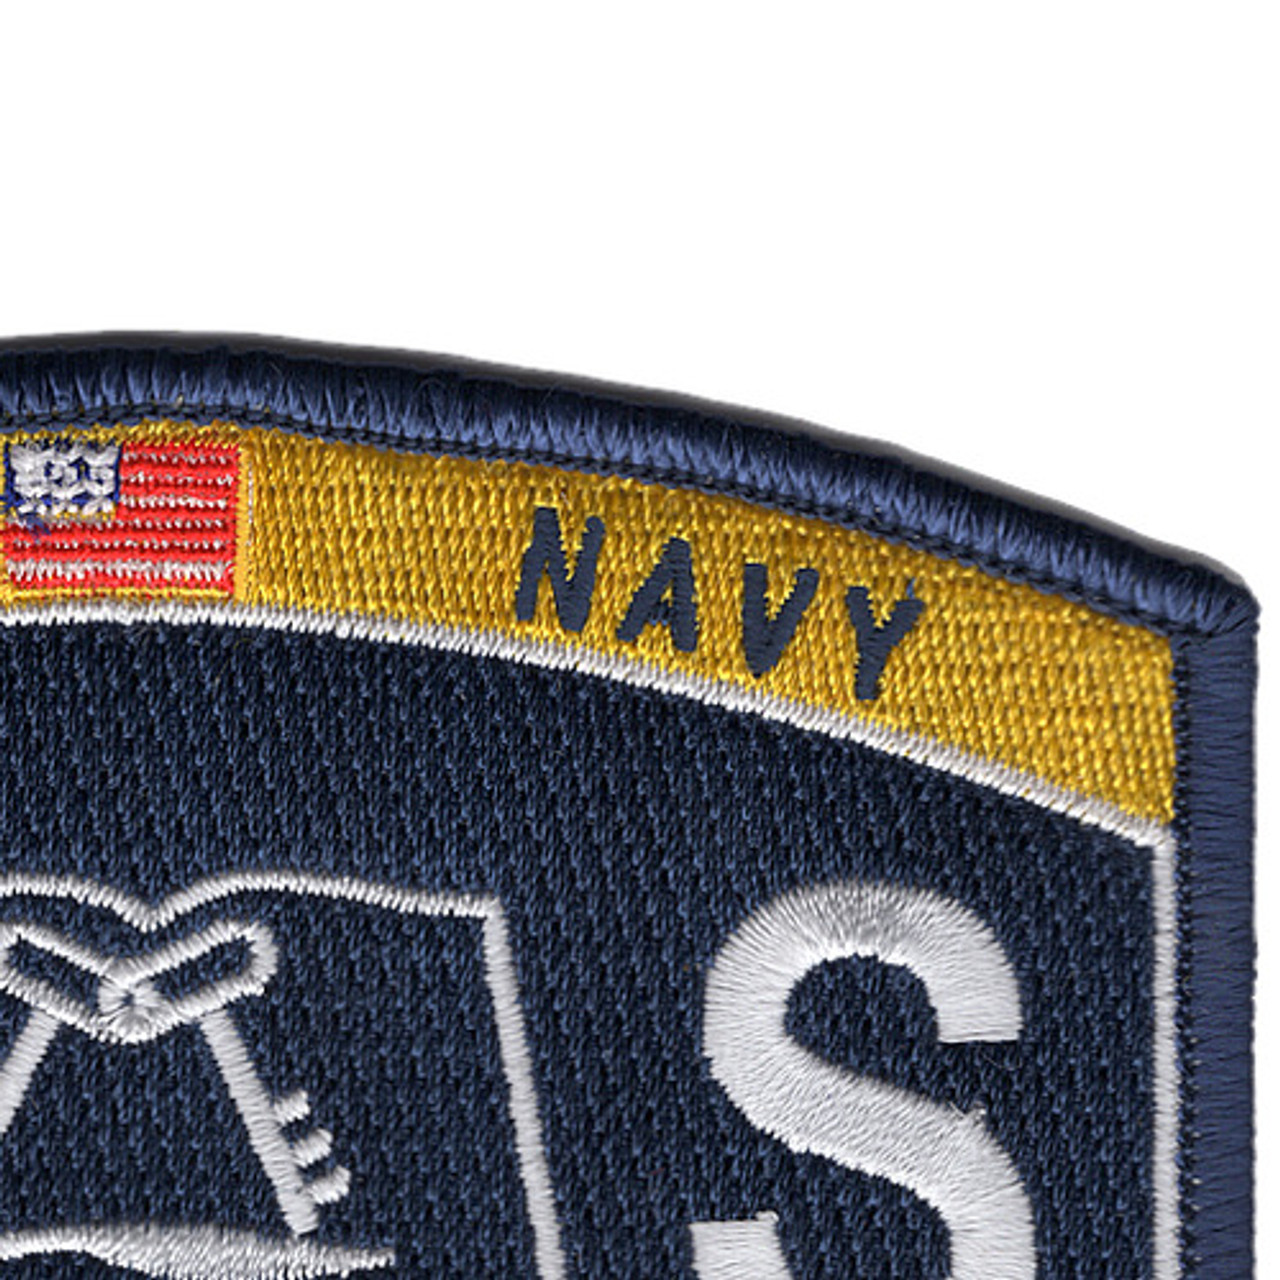 MESS MANAGEMENT SPECIALIST MS RATING HAT PATCH PIN UP USS MESS DECK GIFT US NAVY